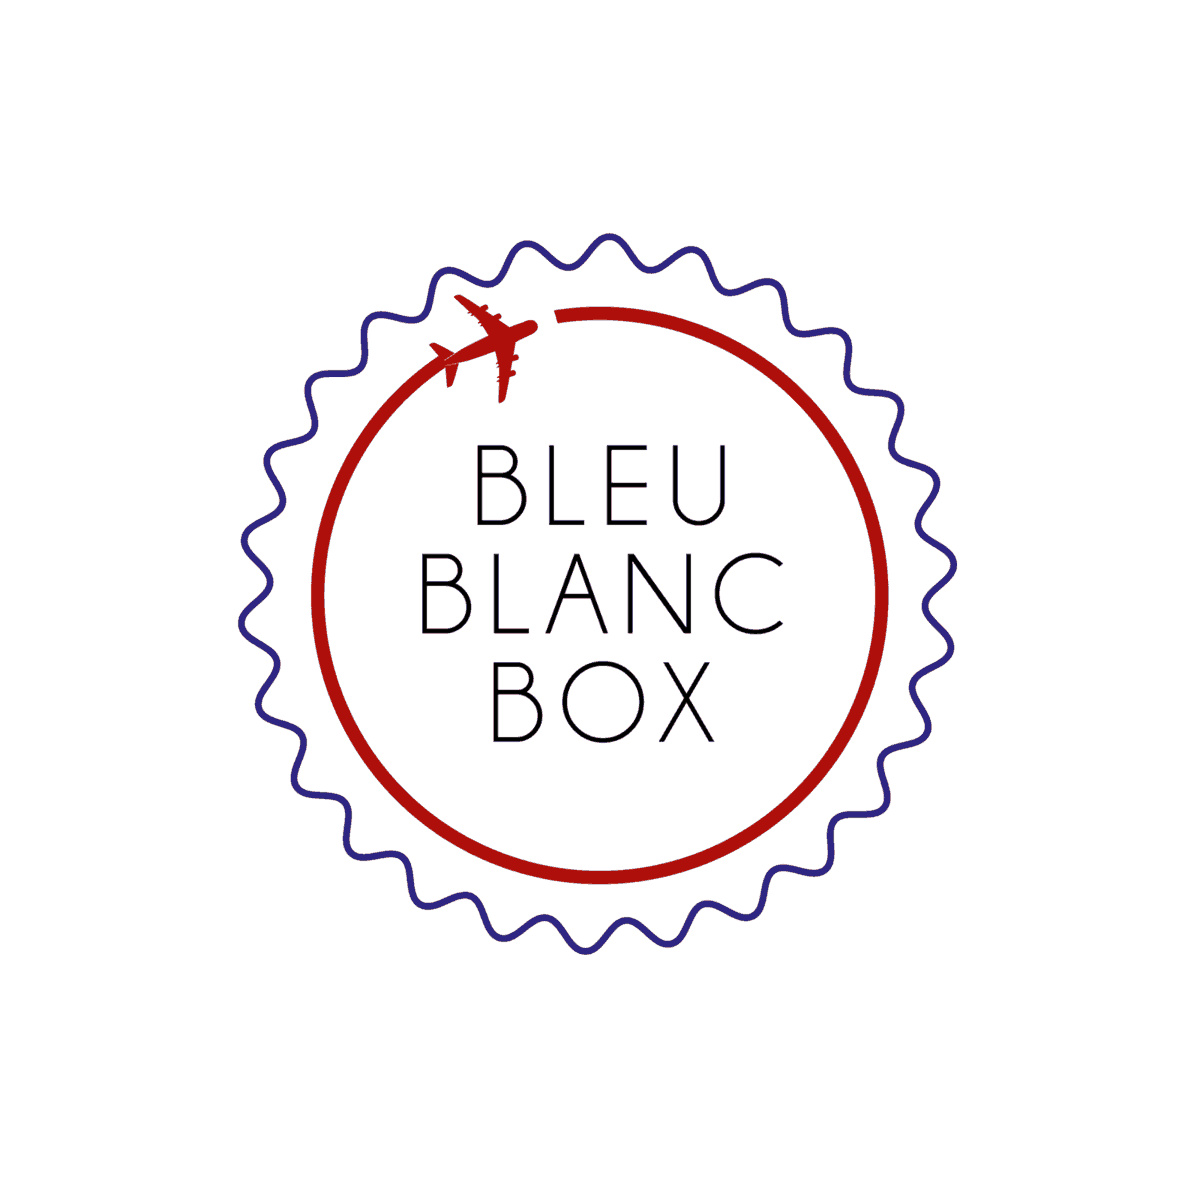 bleu blanc box toutes les box. Black Bedroom Furniture Sets. Home Design Ideas